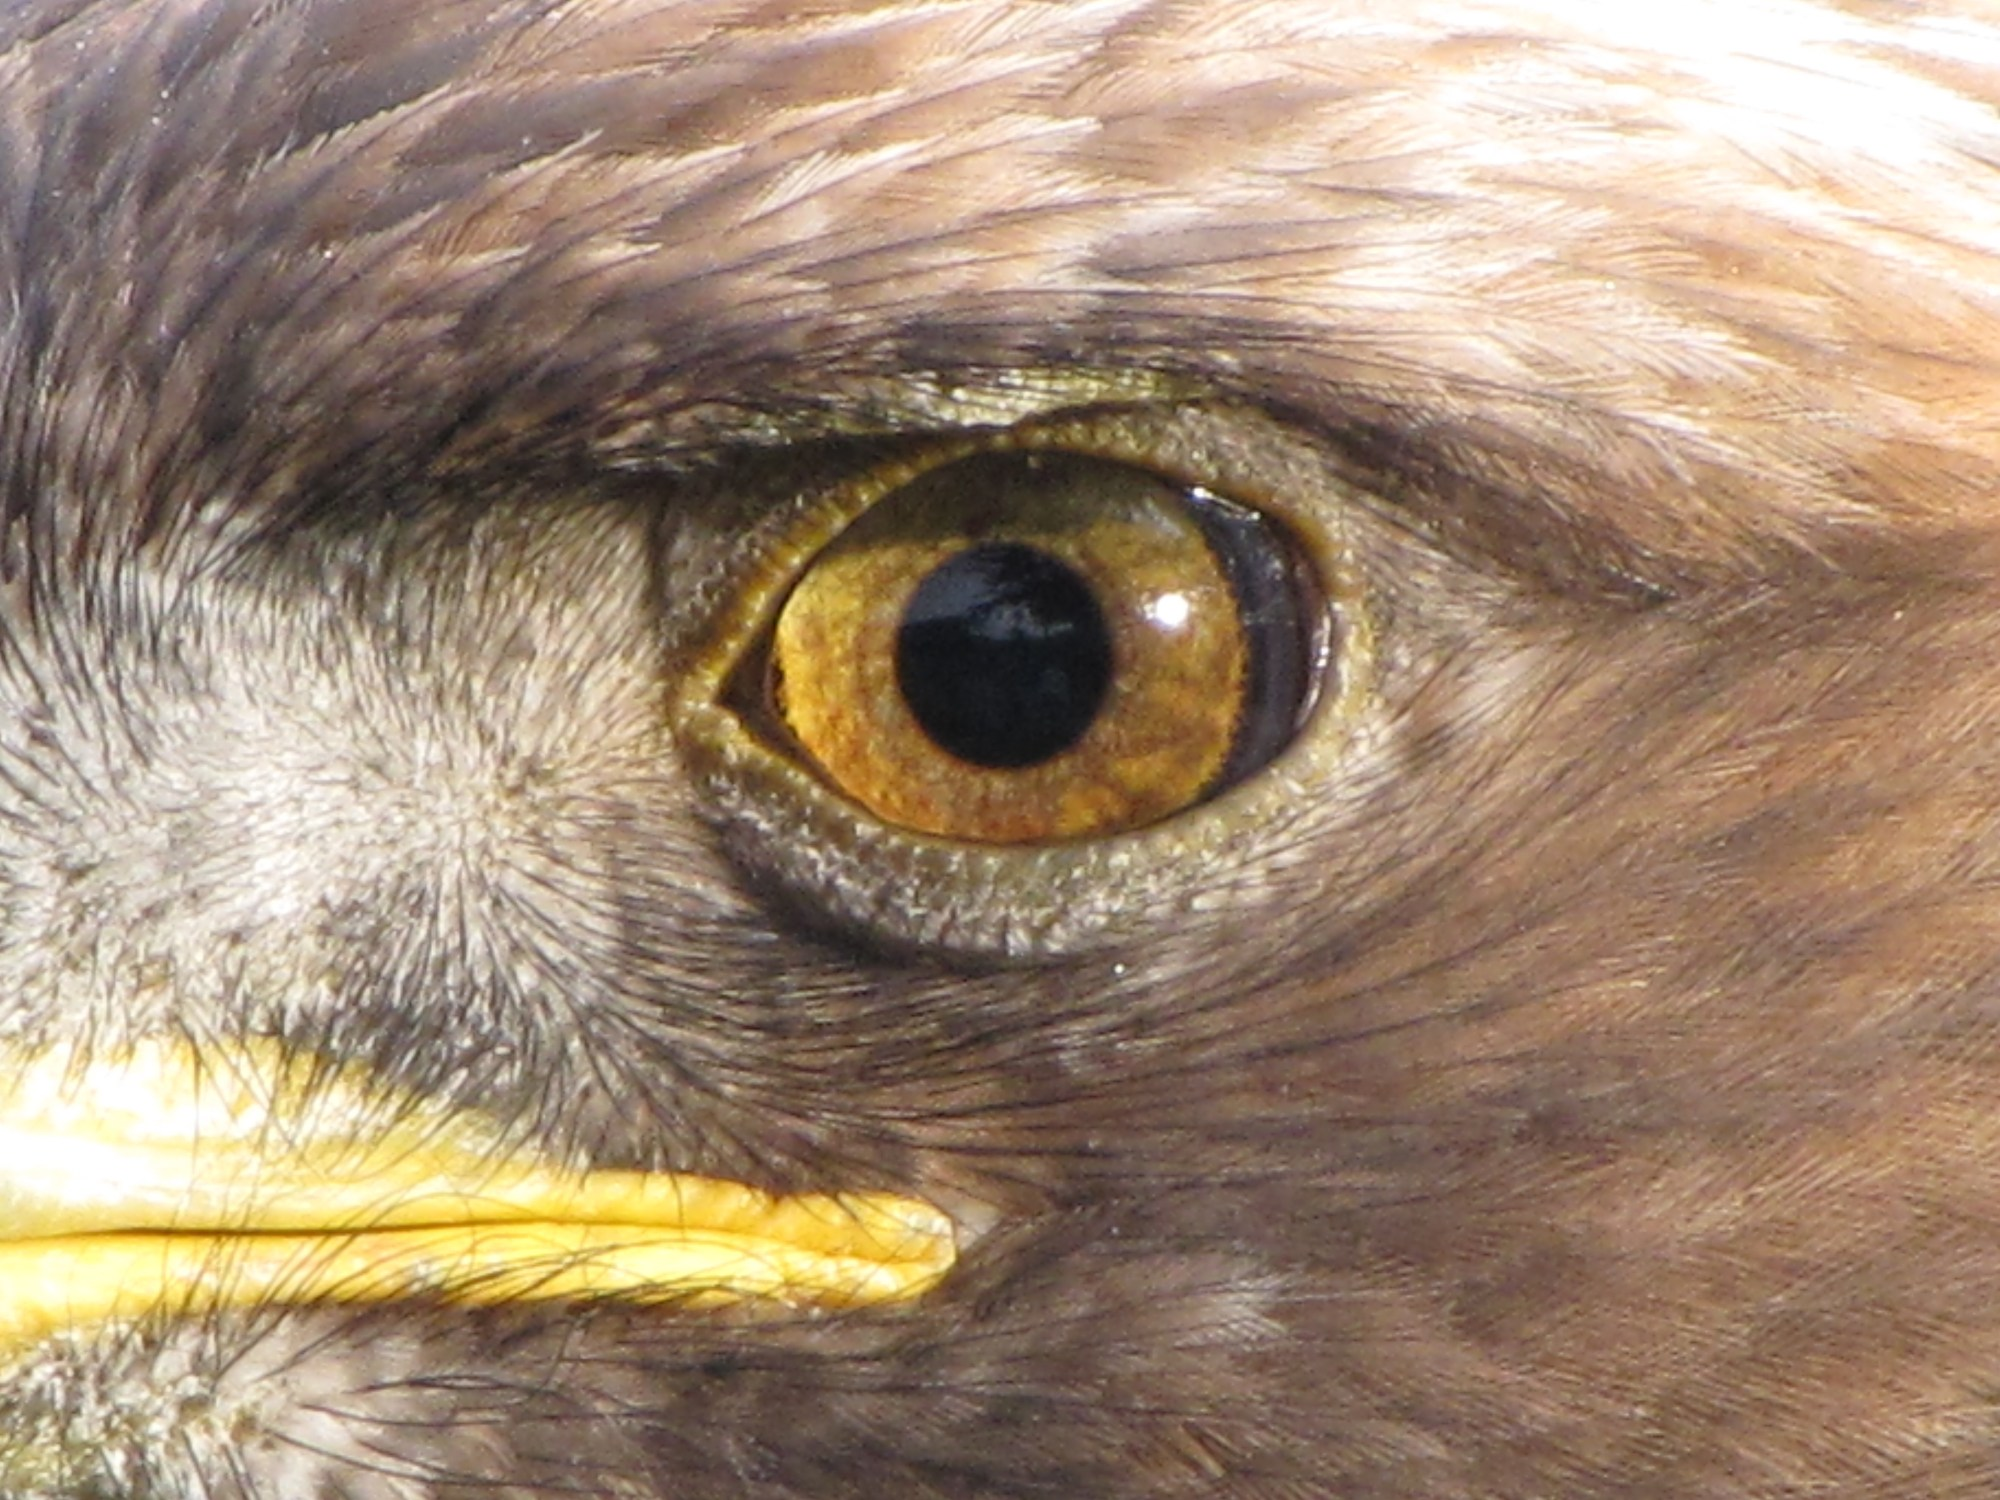 hight resolution of eagle eye from wikipedia